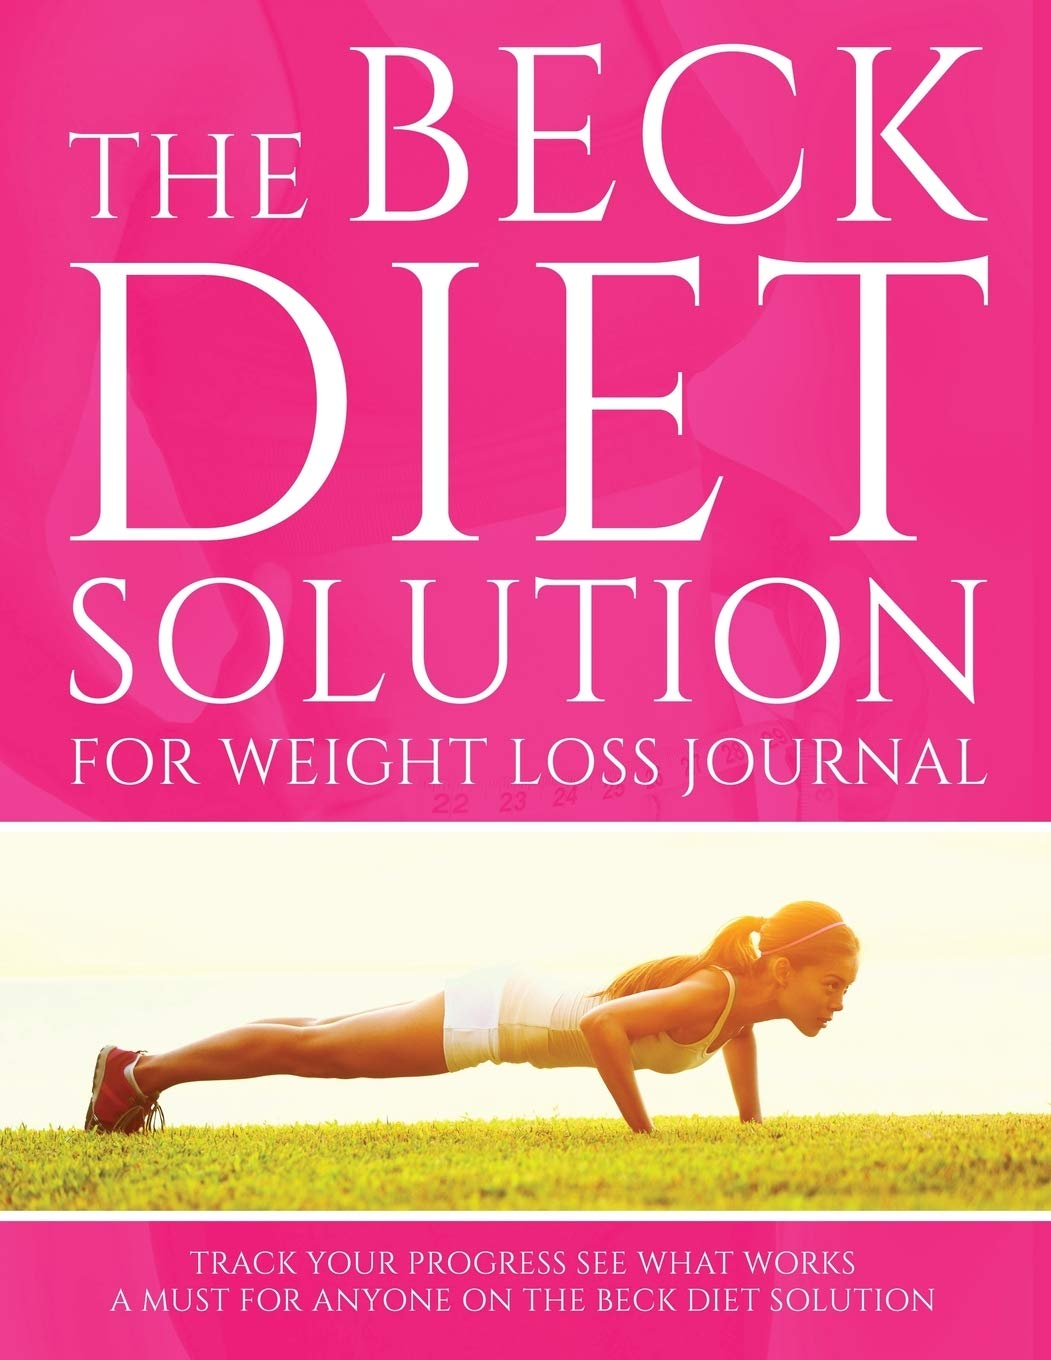 which beck diet book should i get